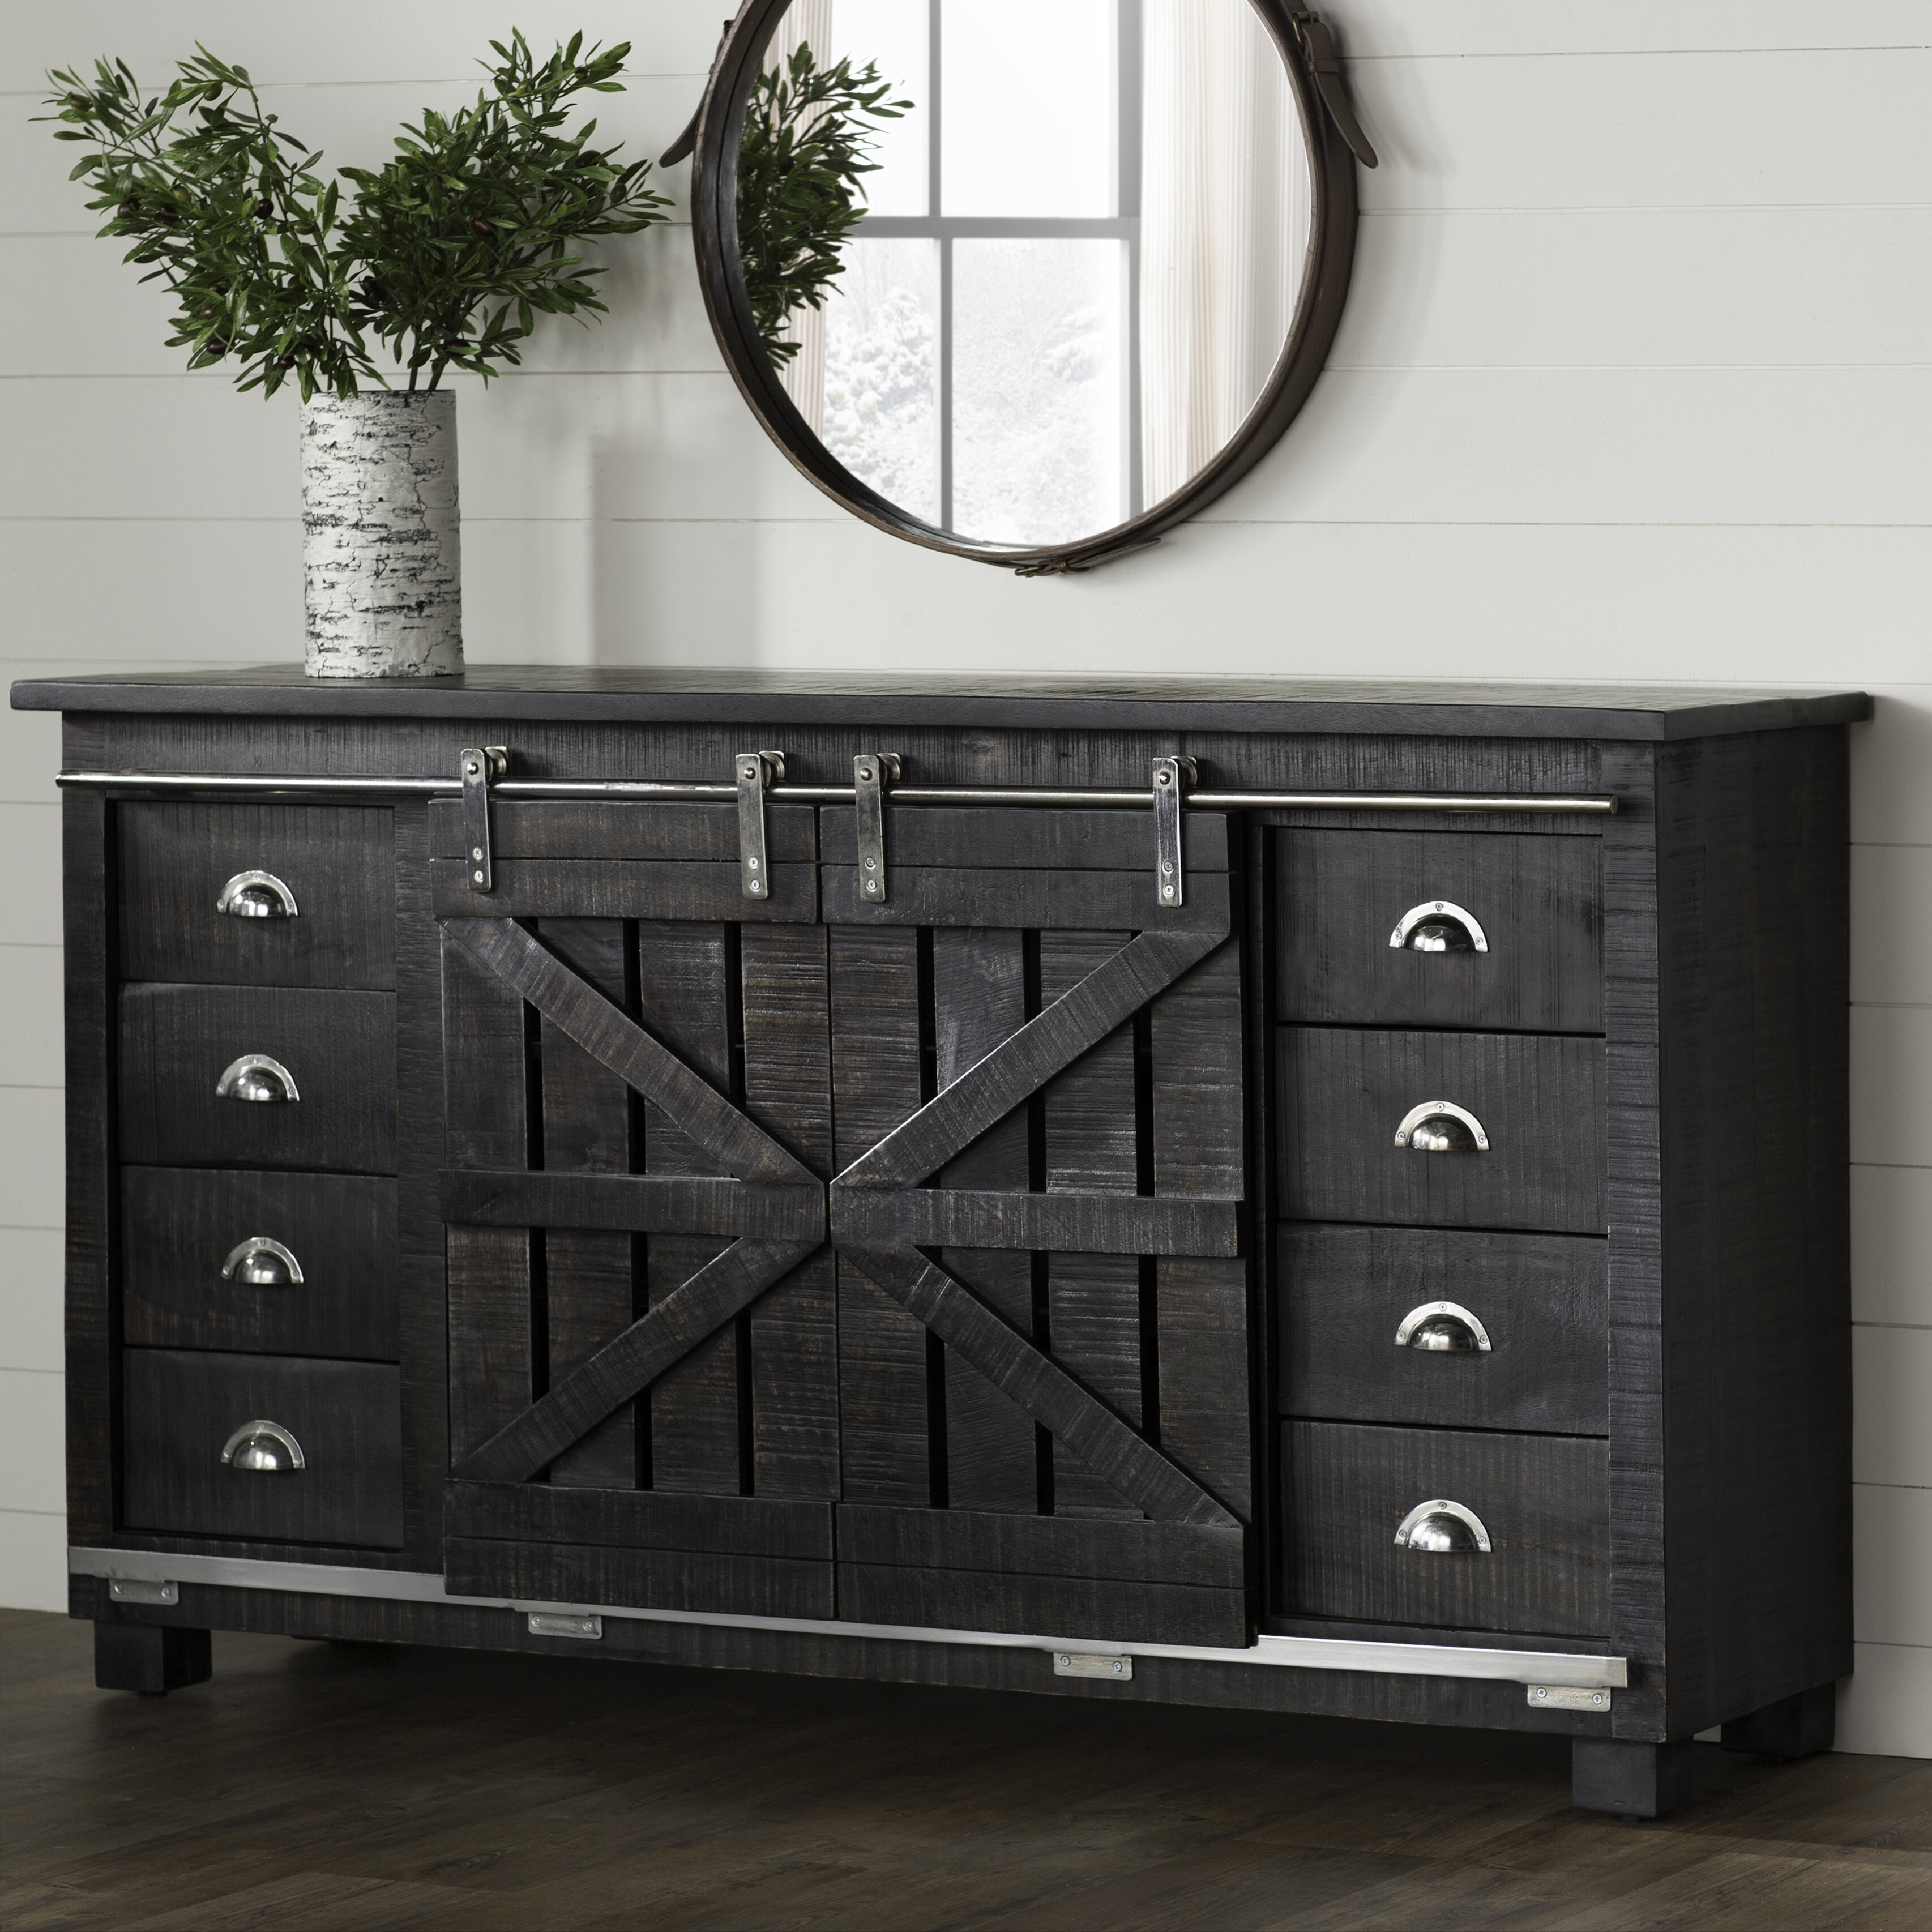 Laurel Foundry Modern Farmhouse Daub Credenza Intended For Caines Credenzas (View 22 of 30)